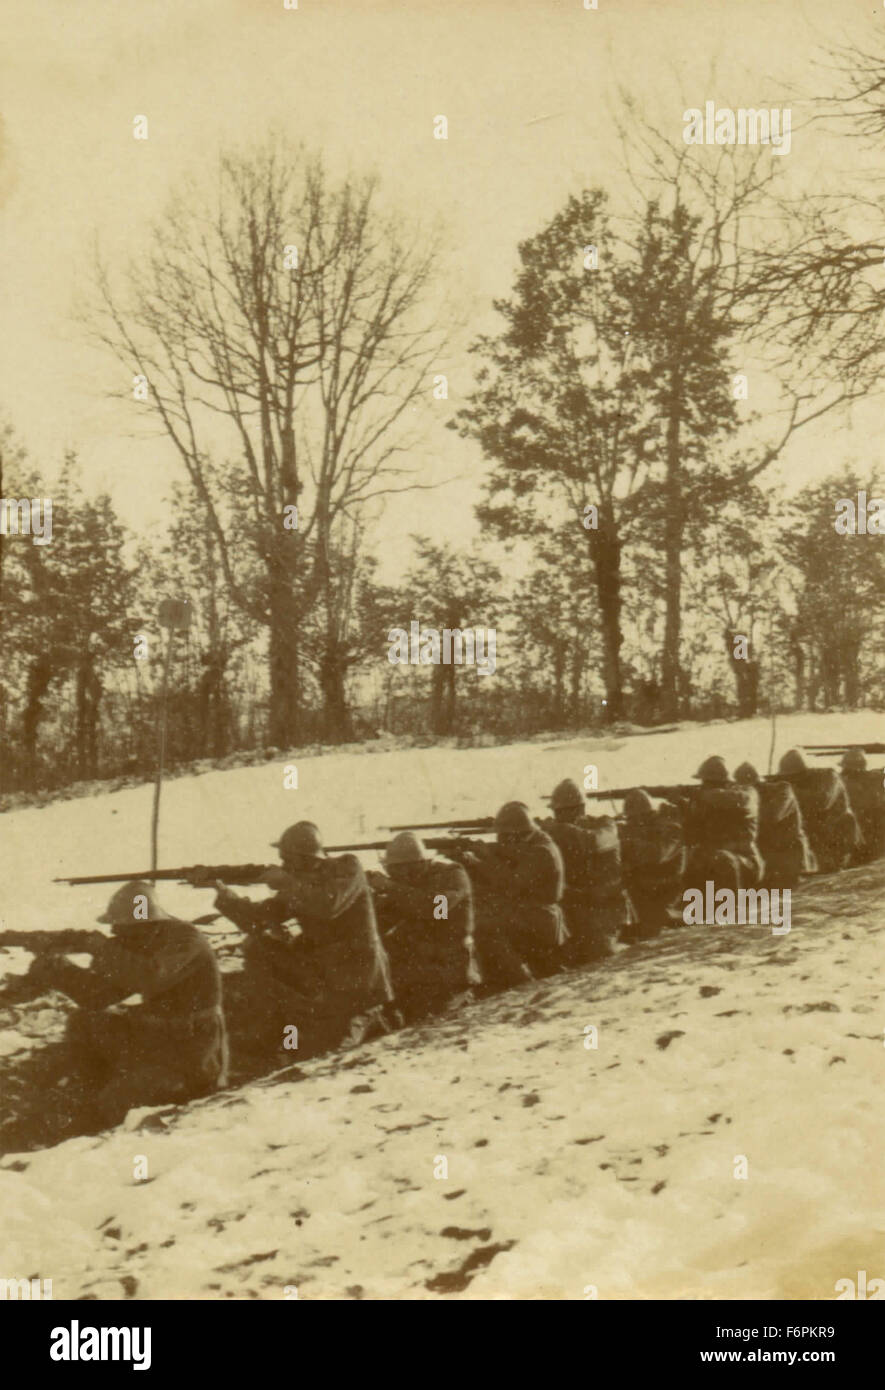 Italian soldiers in the trenches - Stock Image